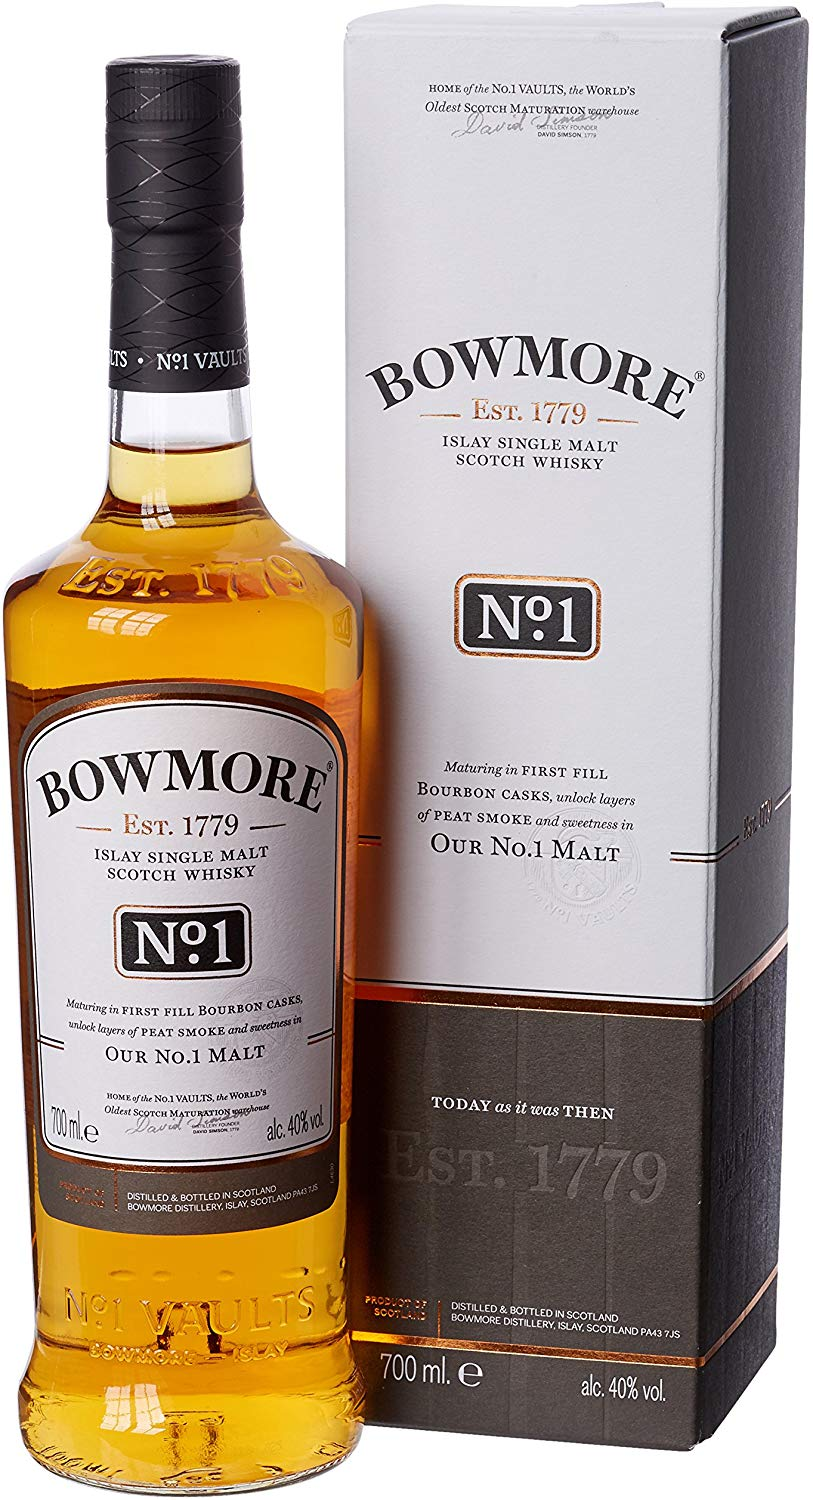 Bowmore No.1 Single Malt Scotch Whisky, 70 cl